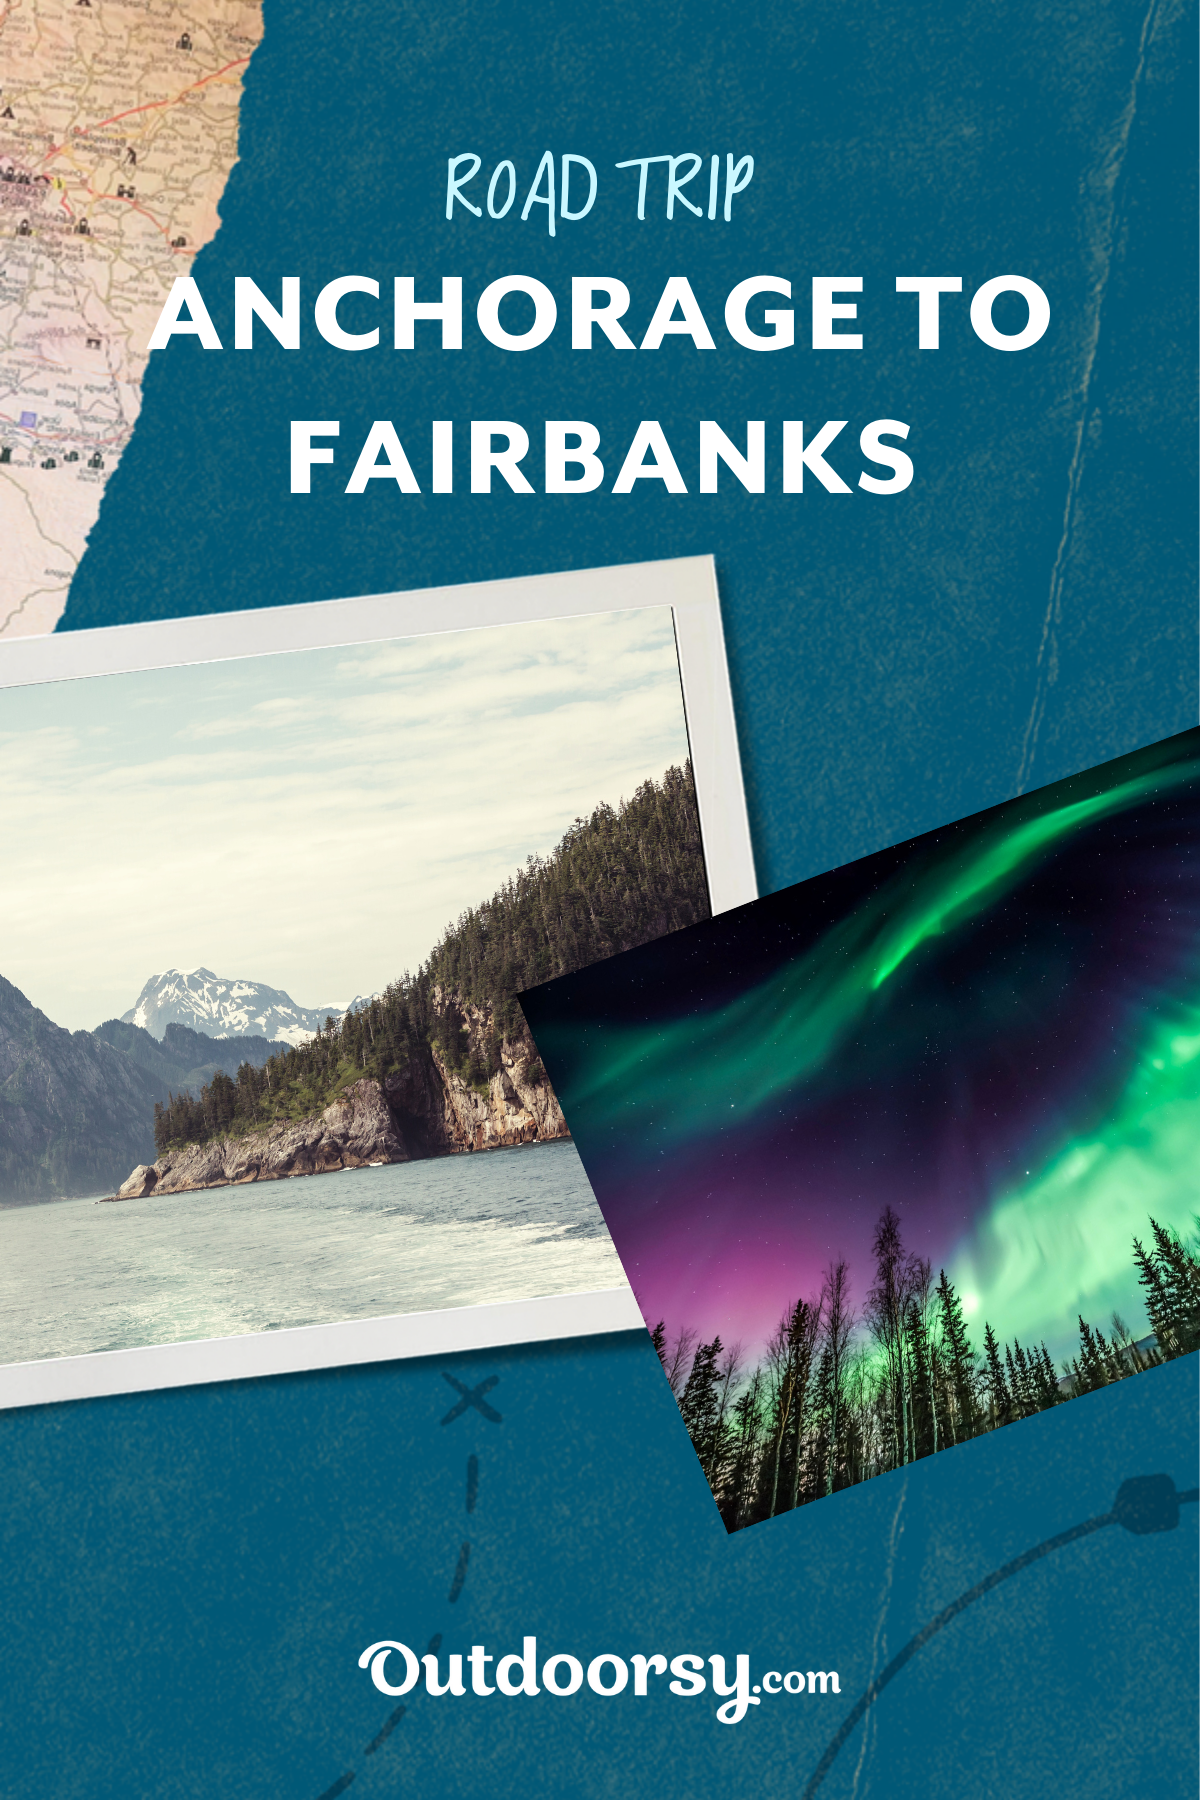 Anchorage To Fairbanks Road Trip Outdoorsy In 2020 Trip Road Trip Outdoor Travel Adventure